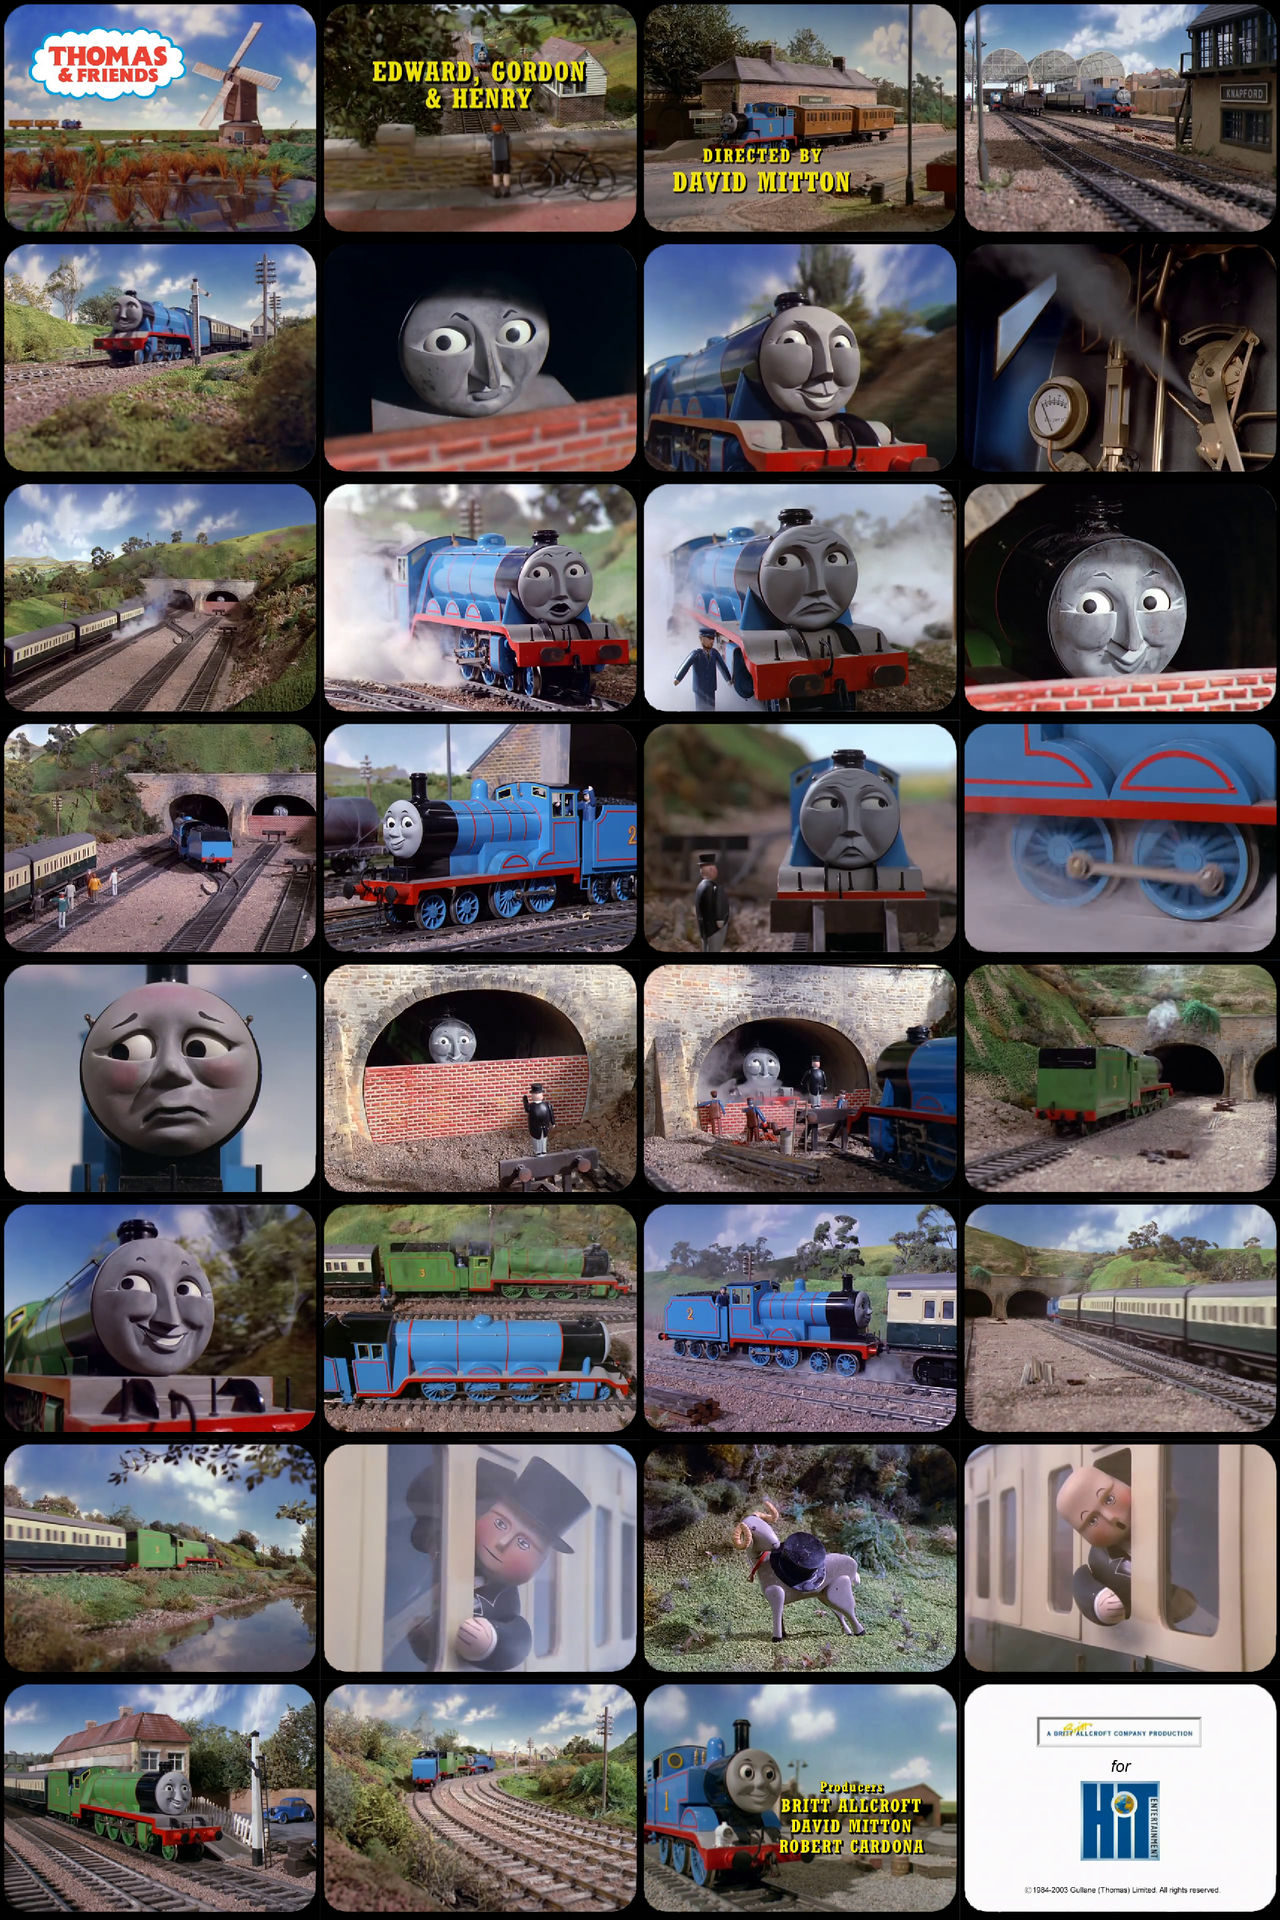 Thomas and Friends Episode 4 Tele-Snaps